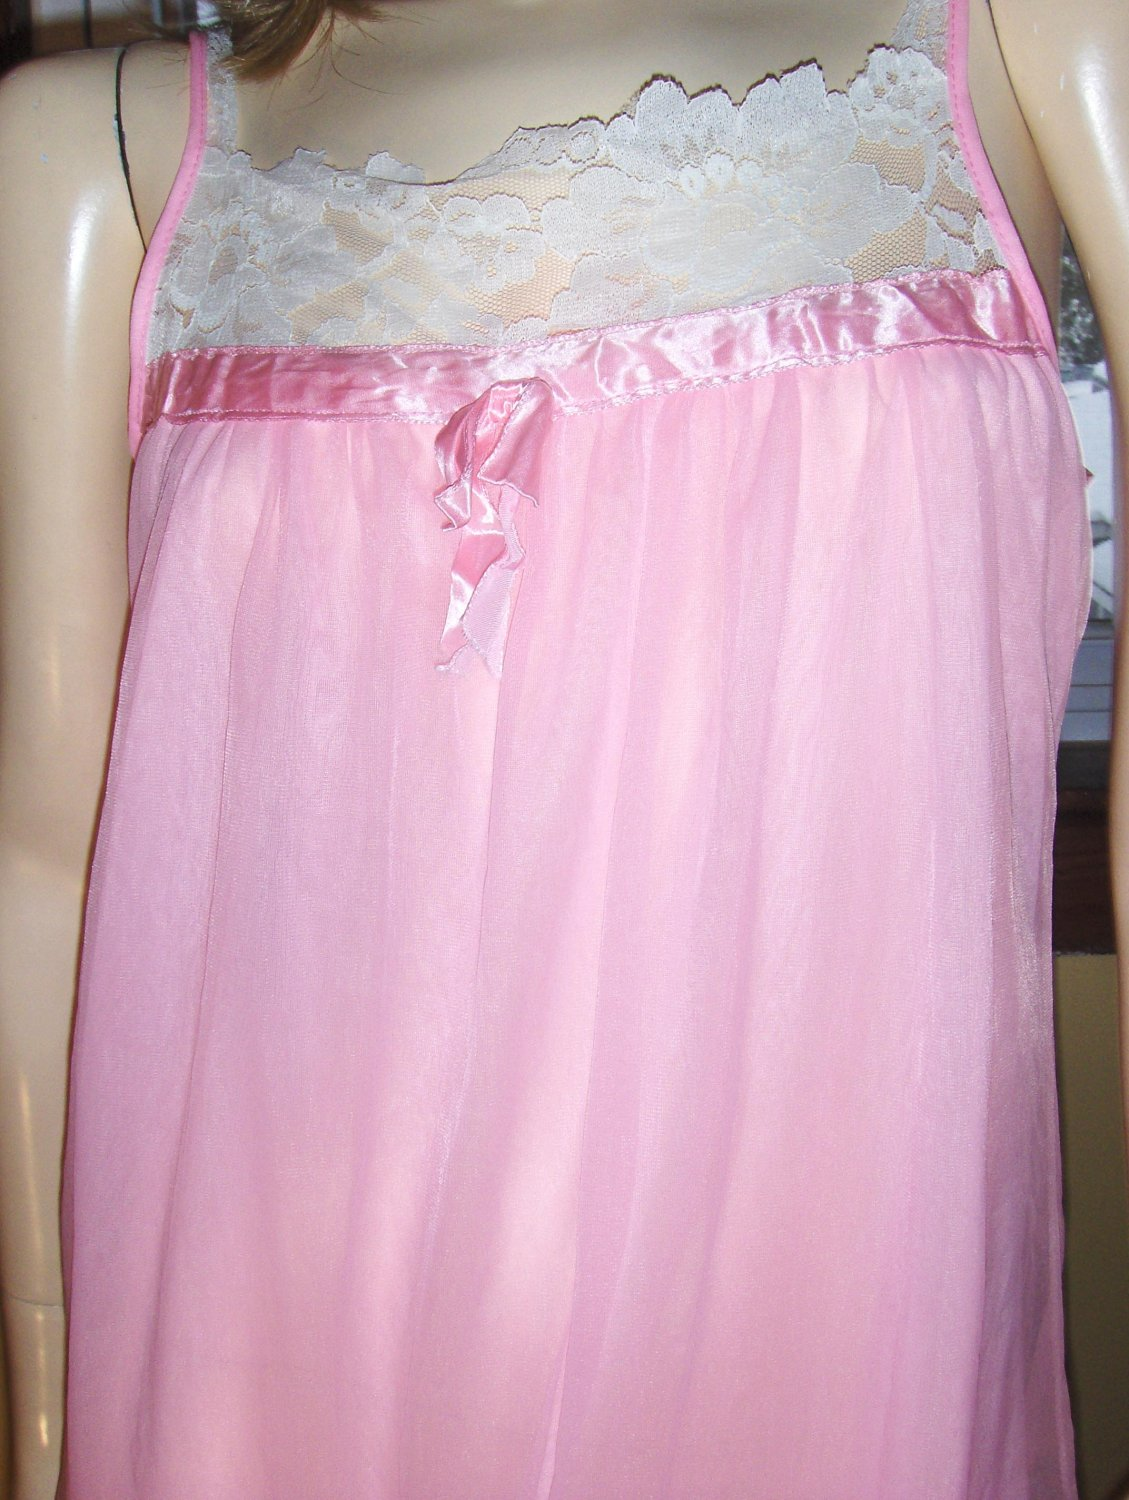 Glam Pink Double Nylon Sheer Chiffon Nightgown vintage 60s 70s S/M